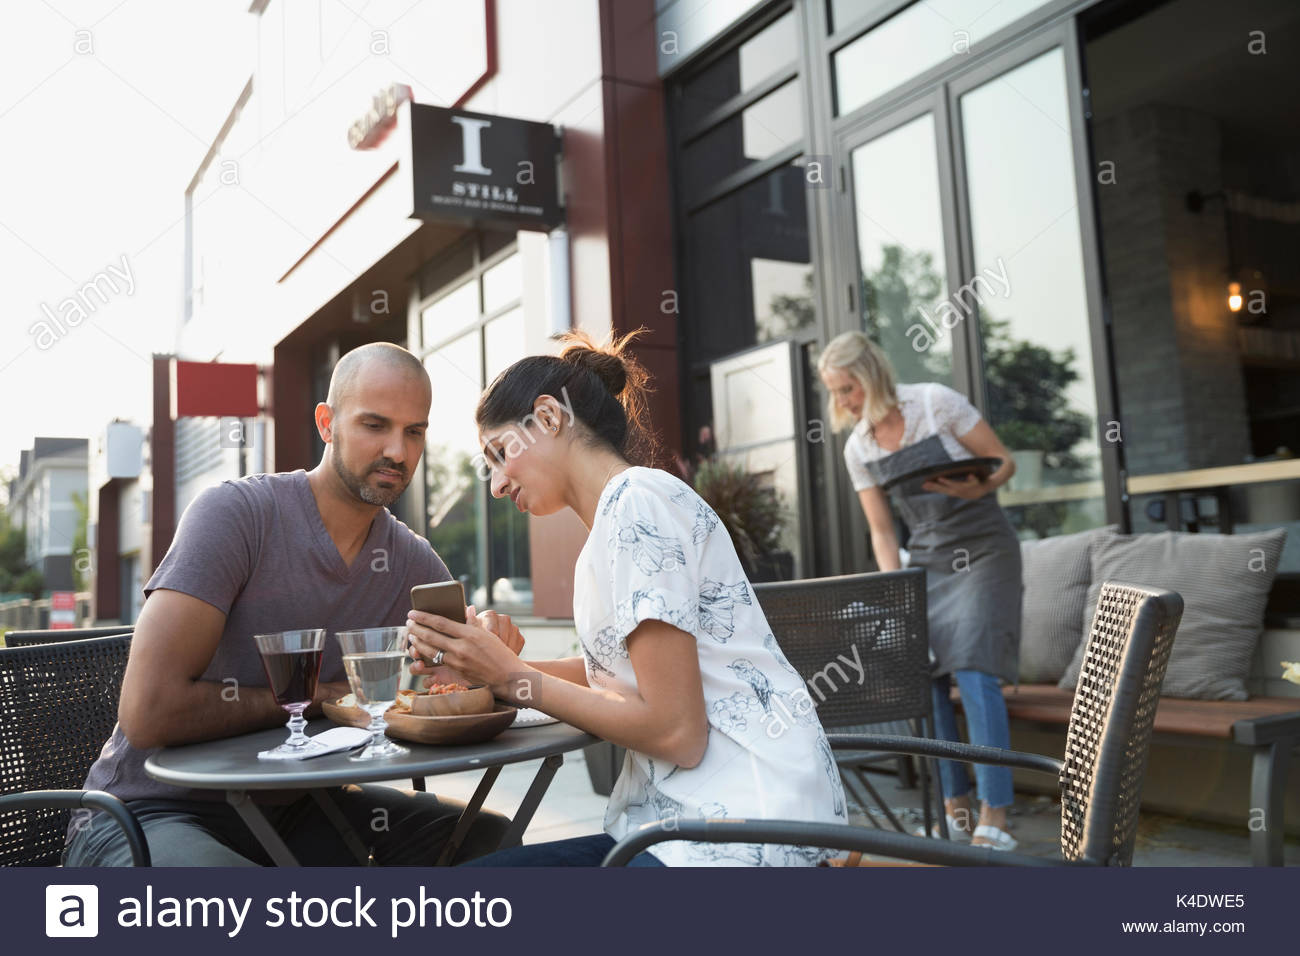 Couple drinking wine and using cell phone at sidewalk cafe - Stock Image